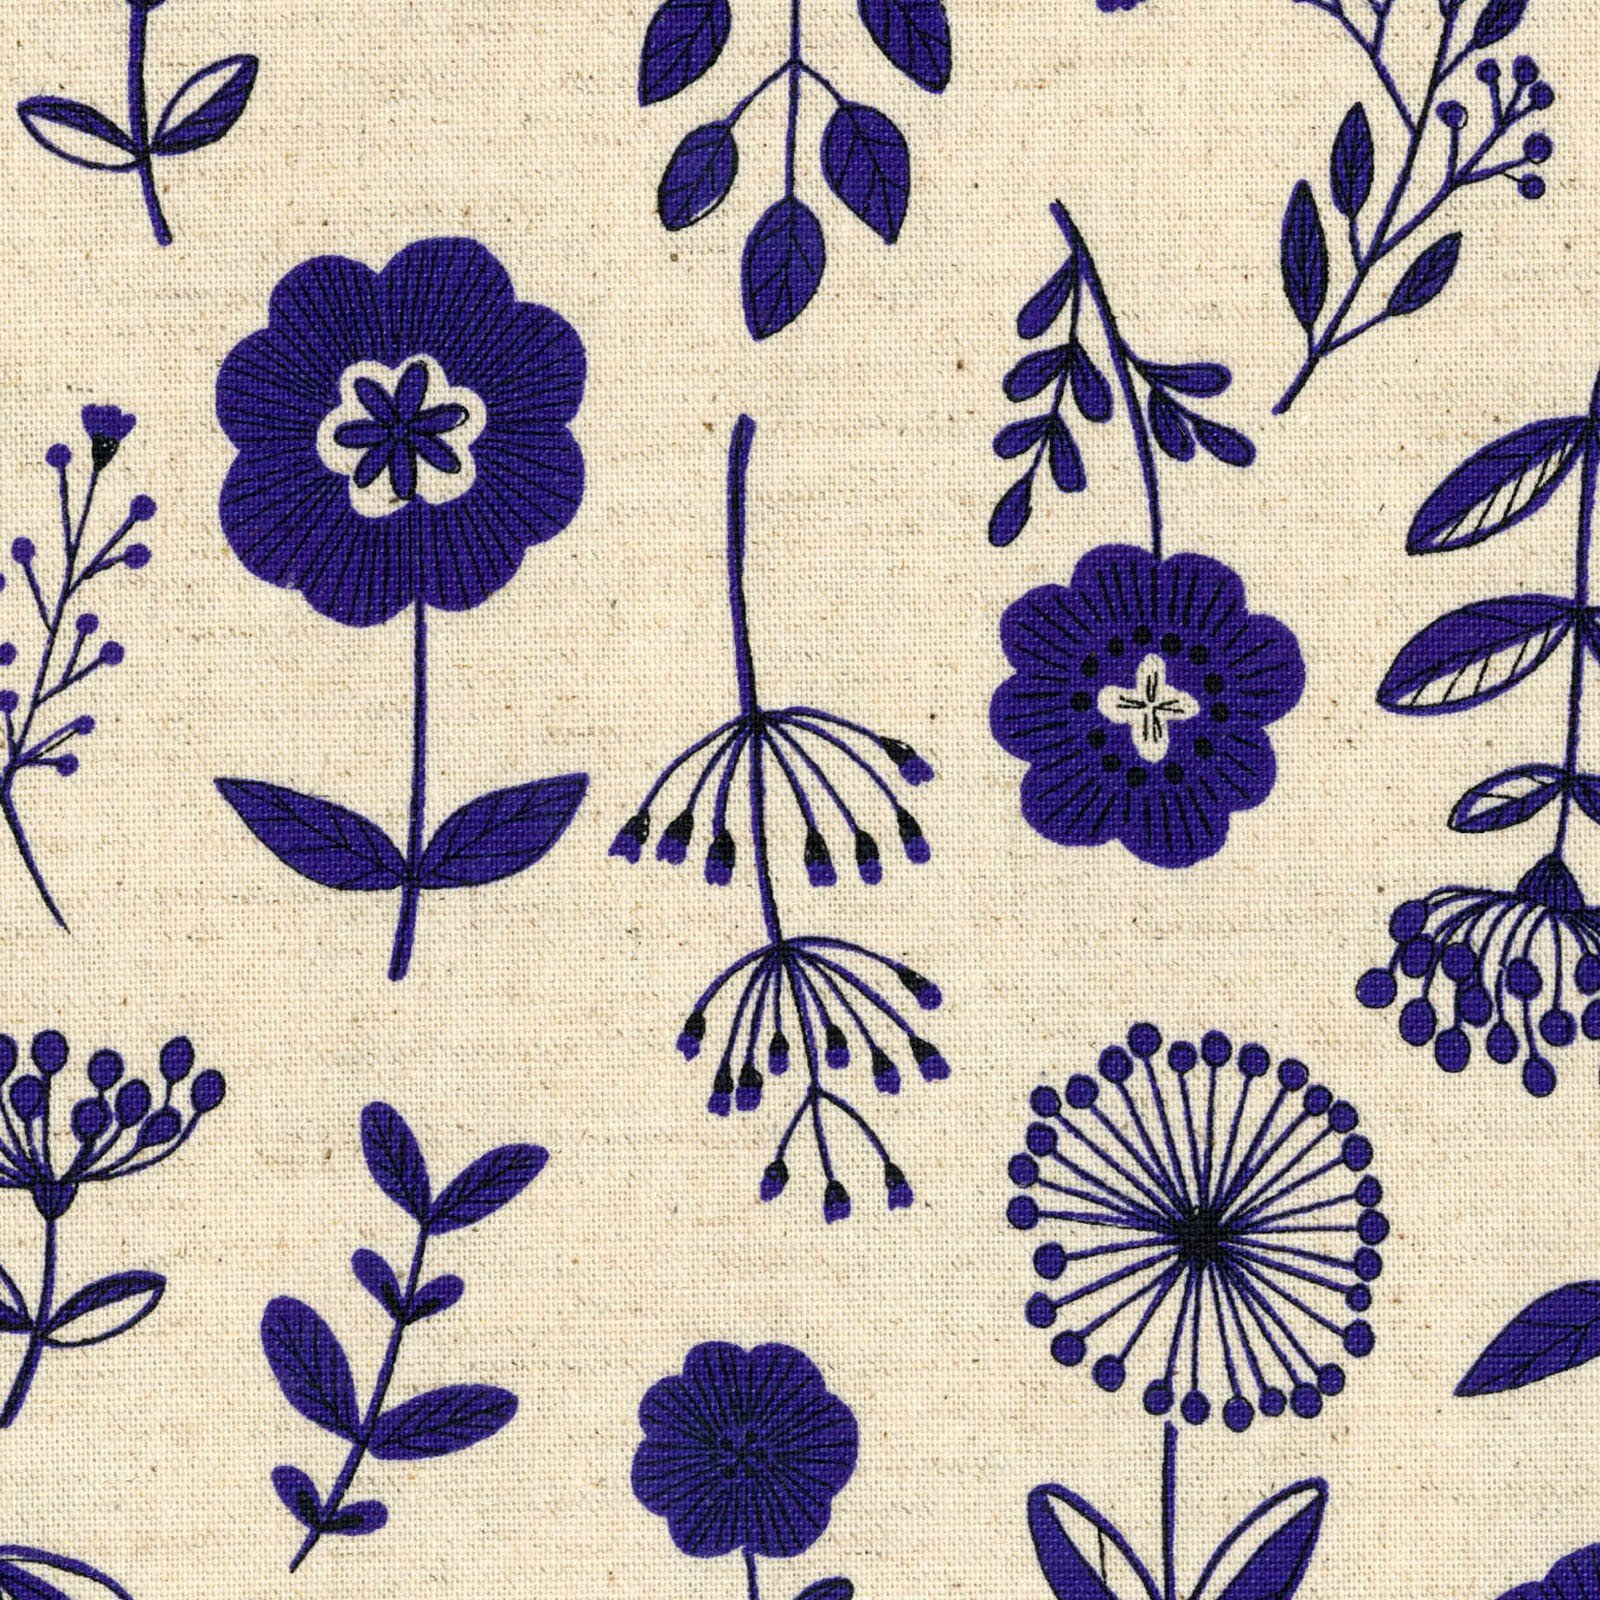 Kokka - Cotton/Linen Canvas - Botany Study - Blue